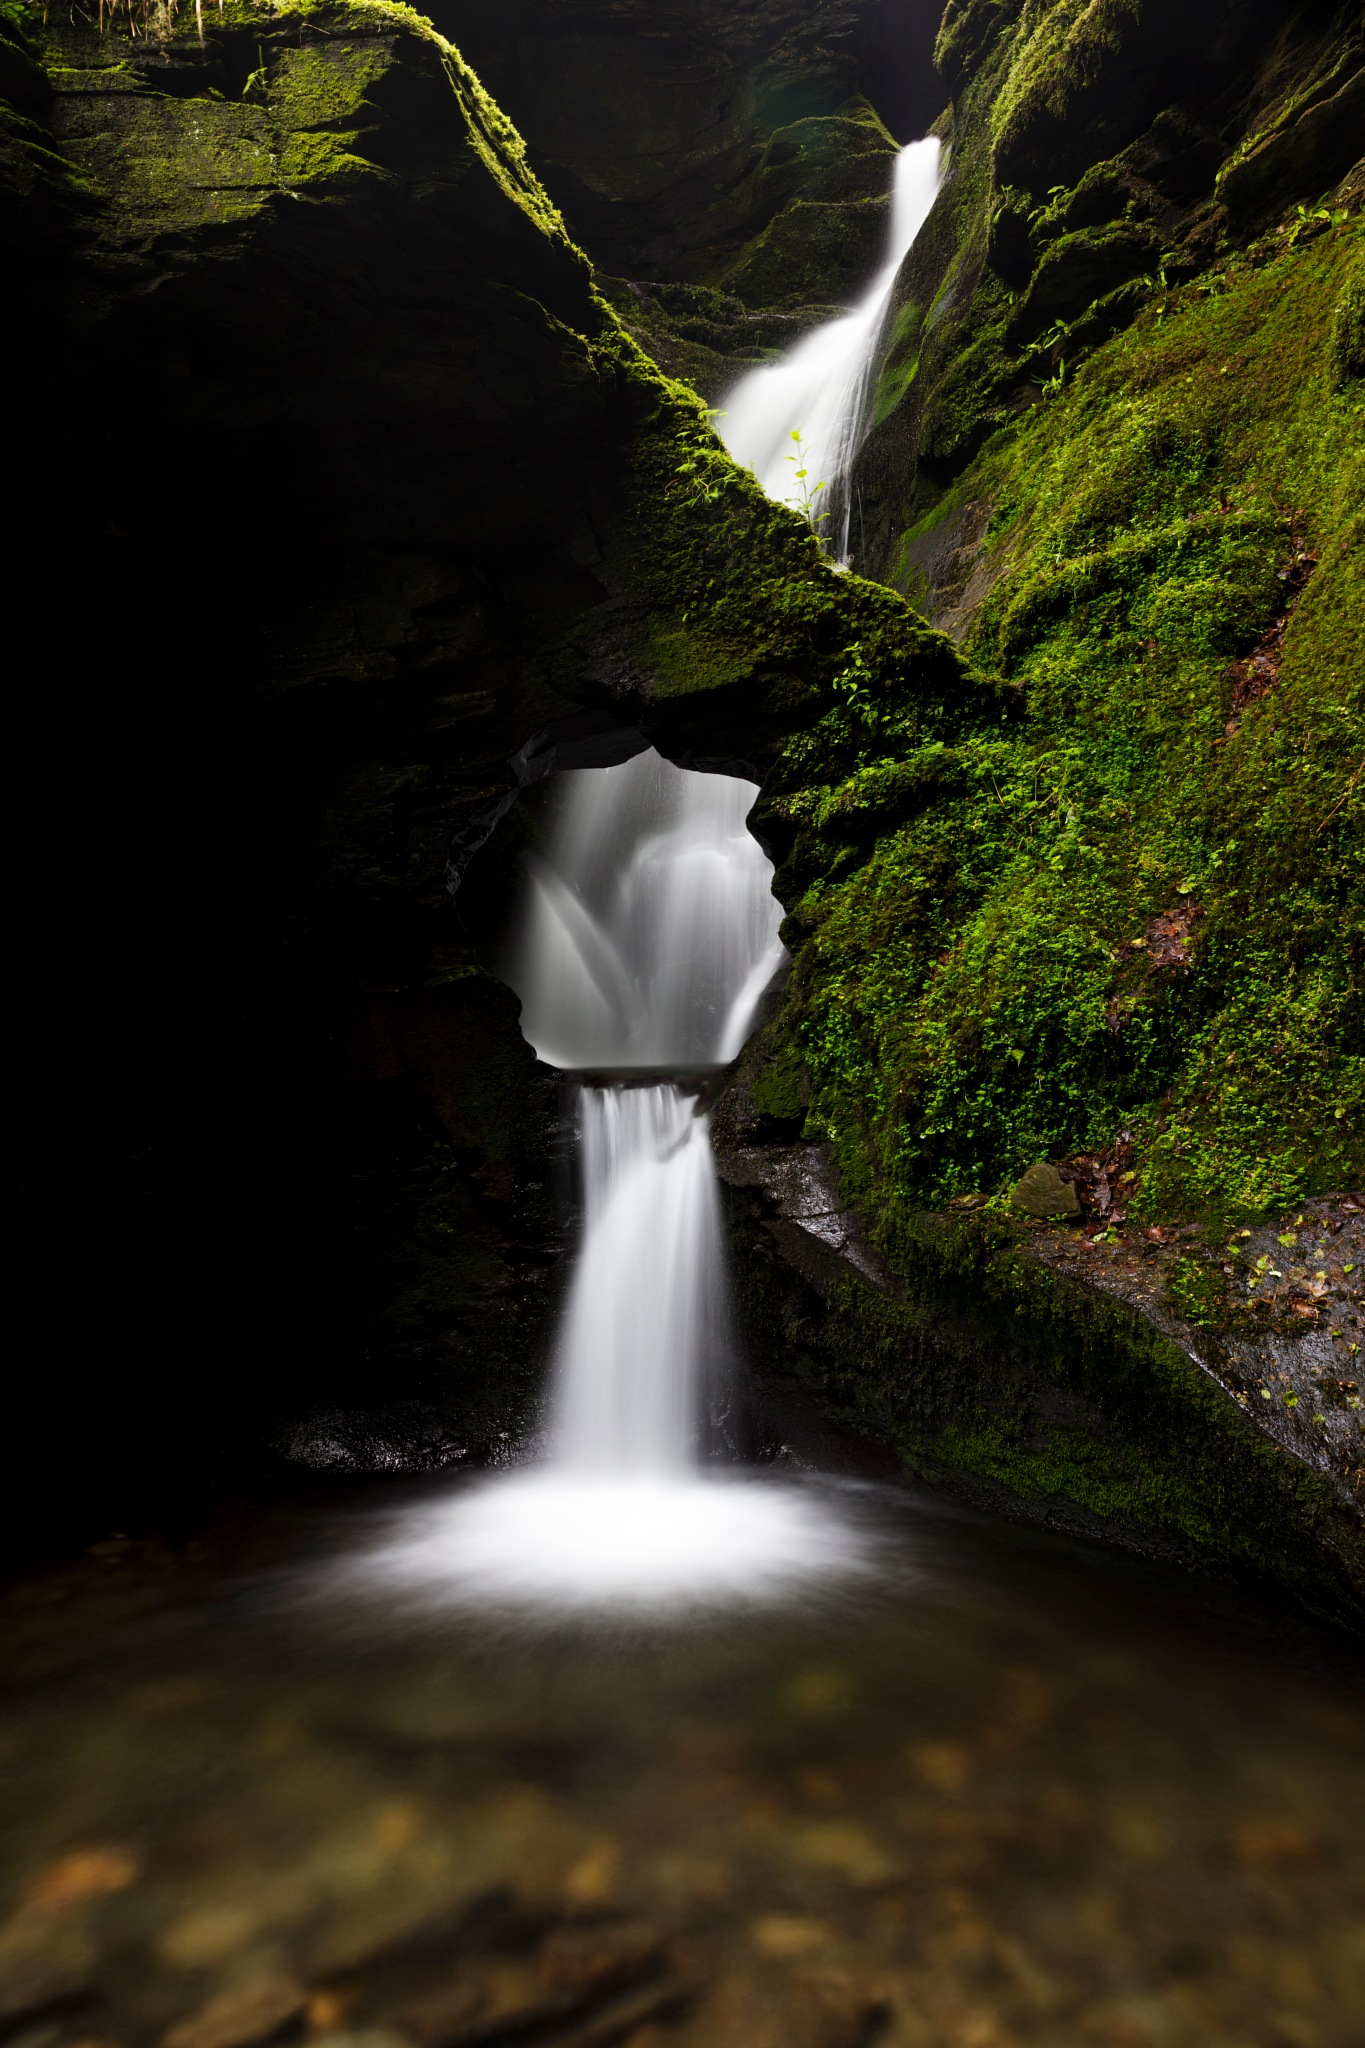 st nectan's waterfall by BerndStephan